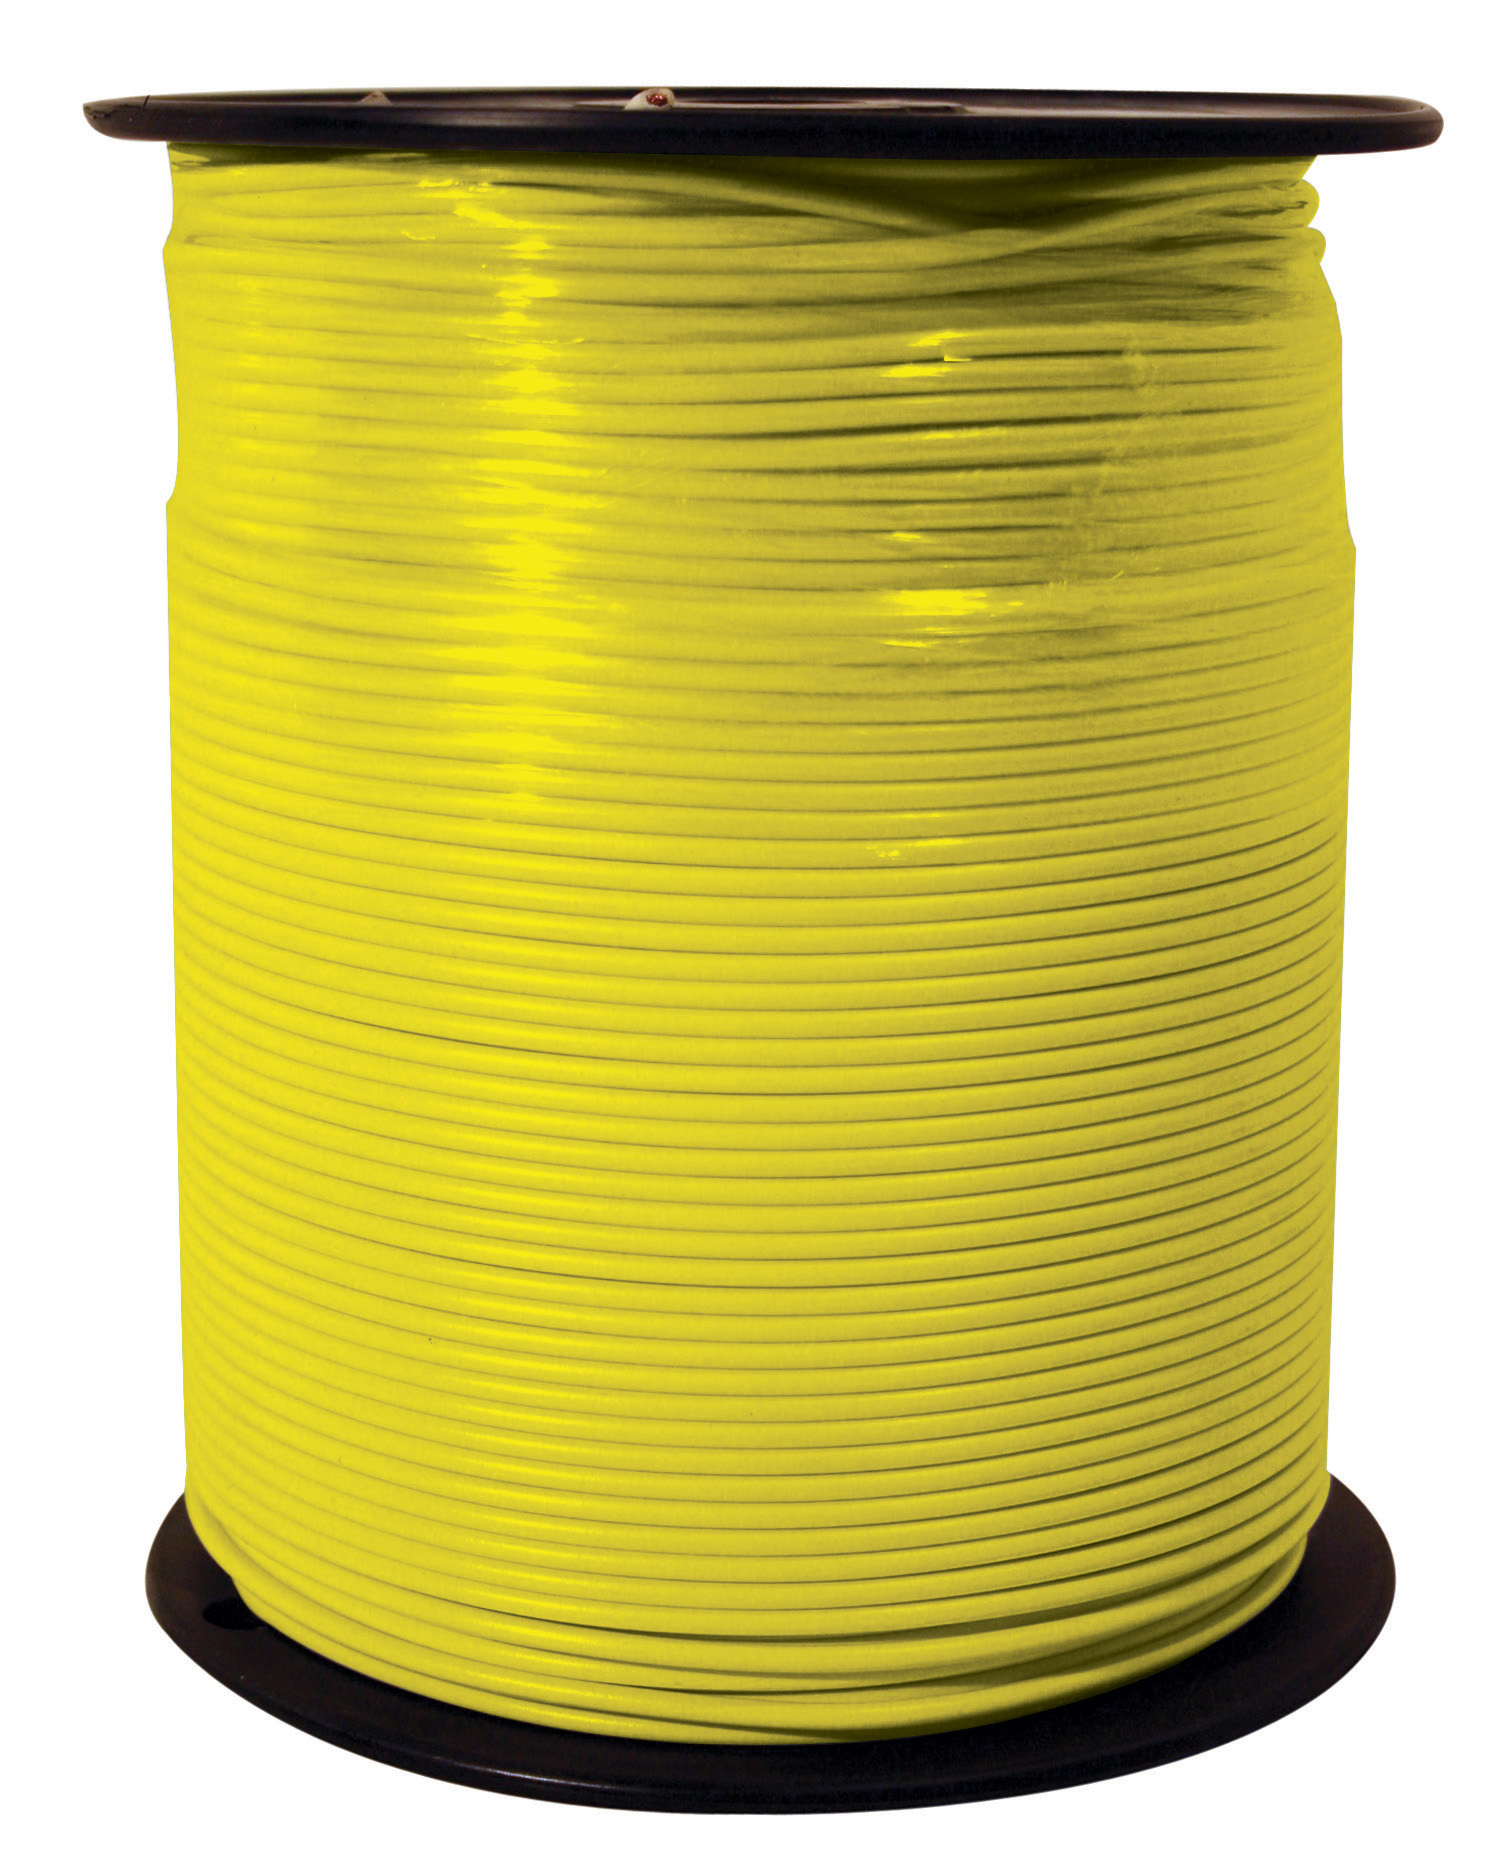 71351-1 100 ft. GPT Plastic Primary Wire with 1 Conductor(s), 12 AWG ...